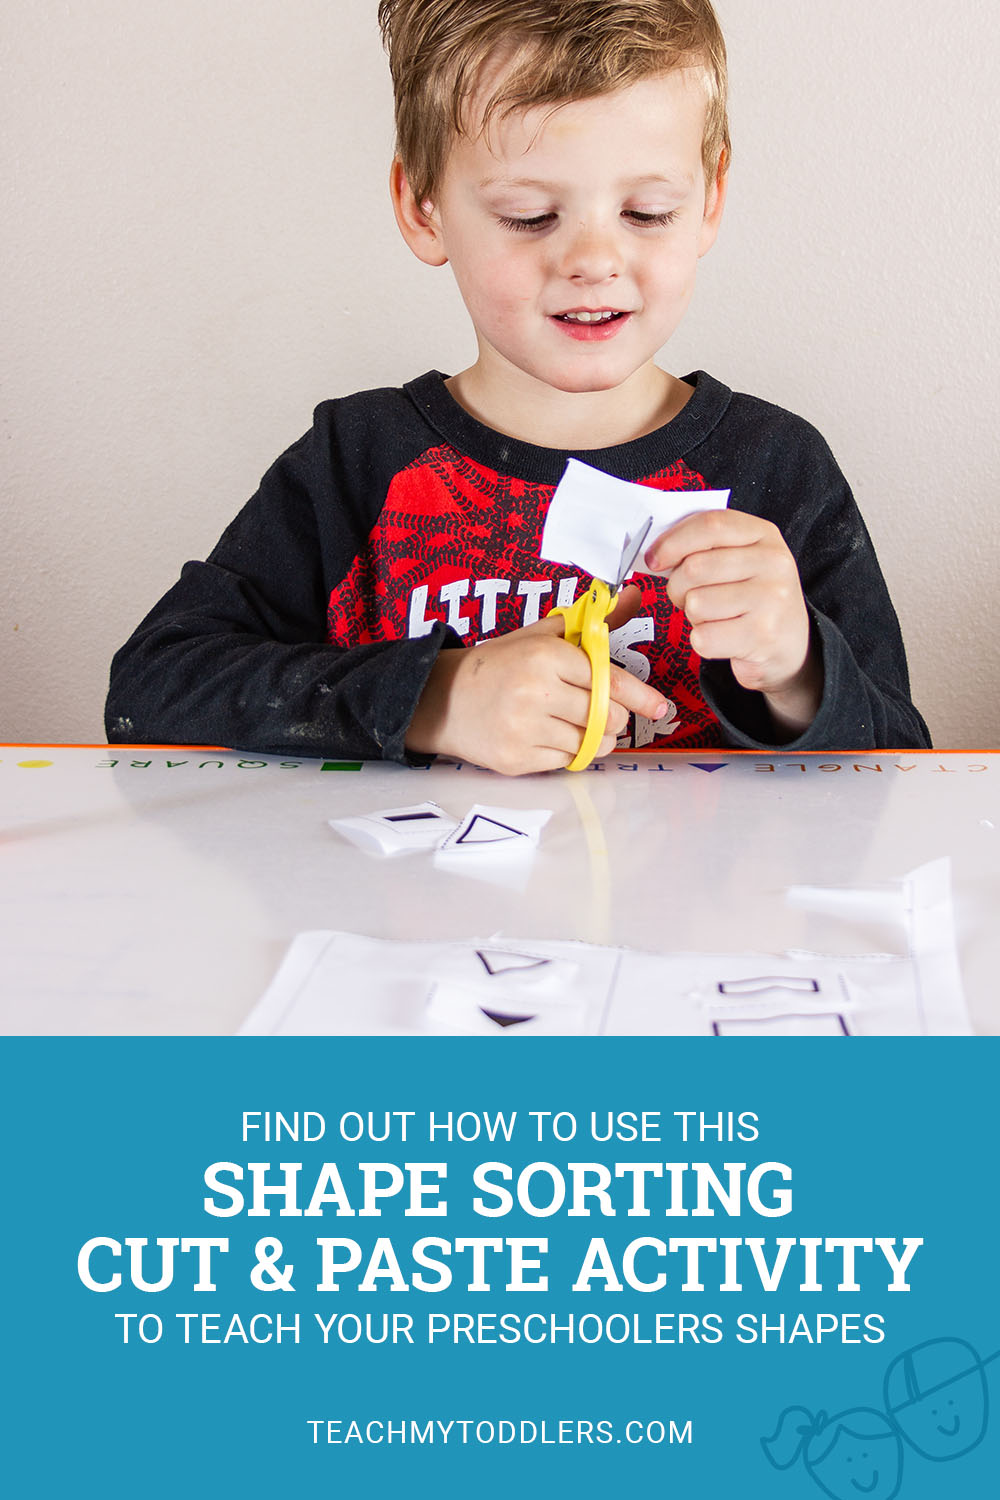 Find out how to use this shape sorting cut and paste activity to teach your preschoolers shapes